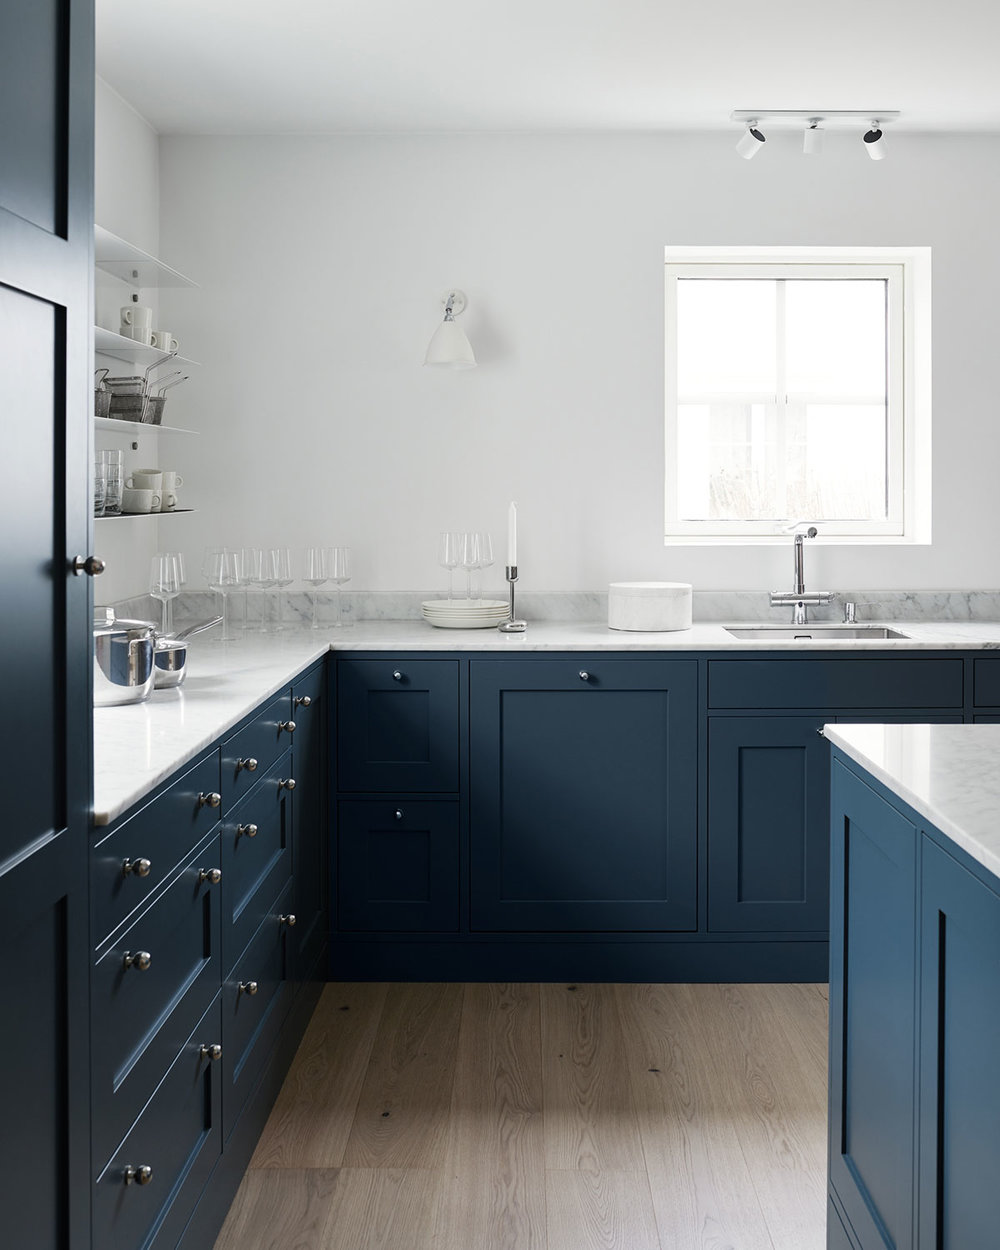 shaker kitchen design in blue, iitalla candle and white Carrara marble